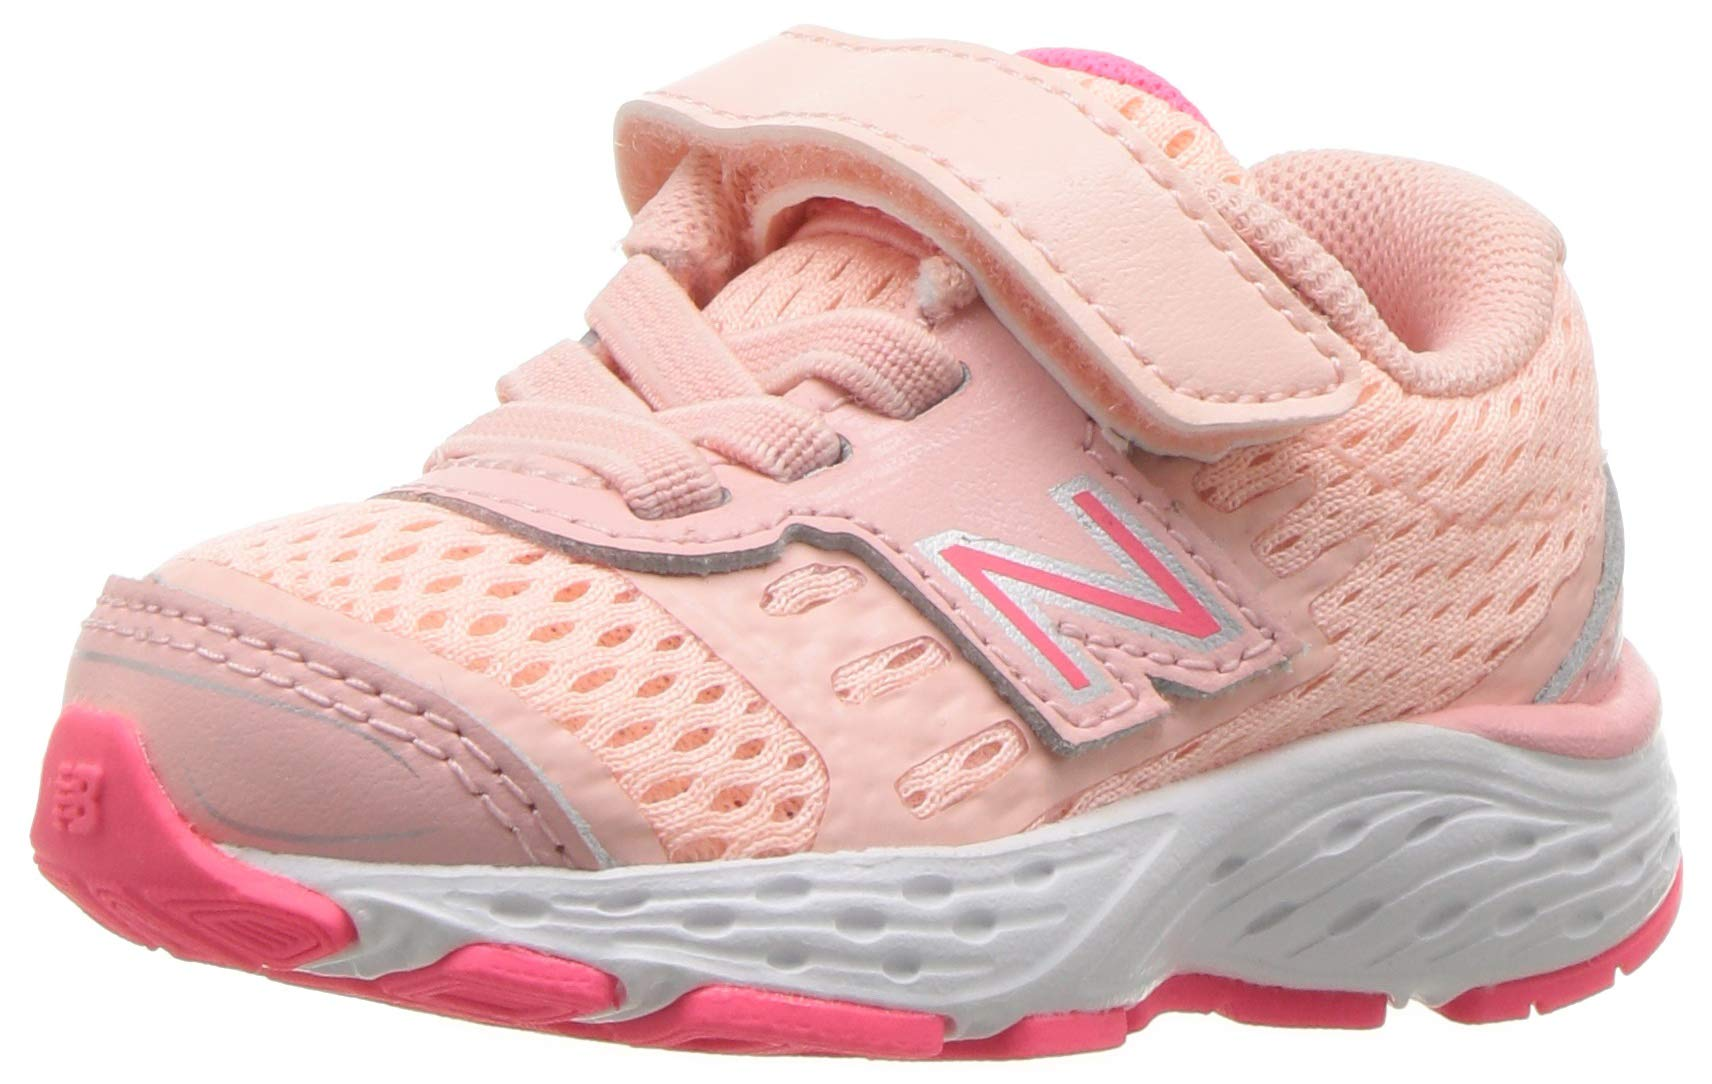 New Balance Girls' 680v5 Running Shoe, Himalayan Pink, 1 M US Little Kid